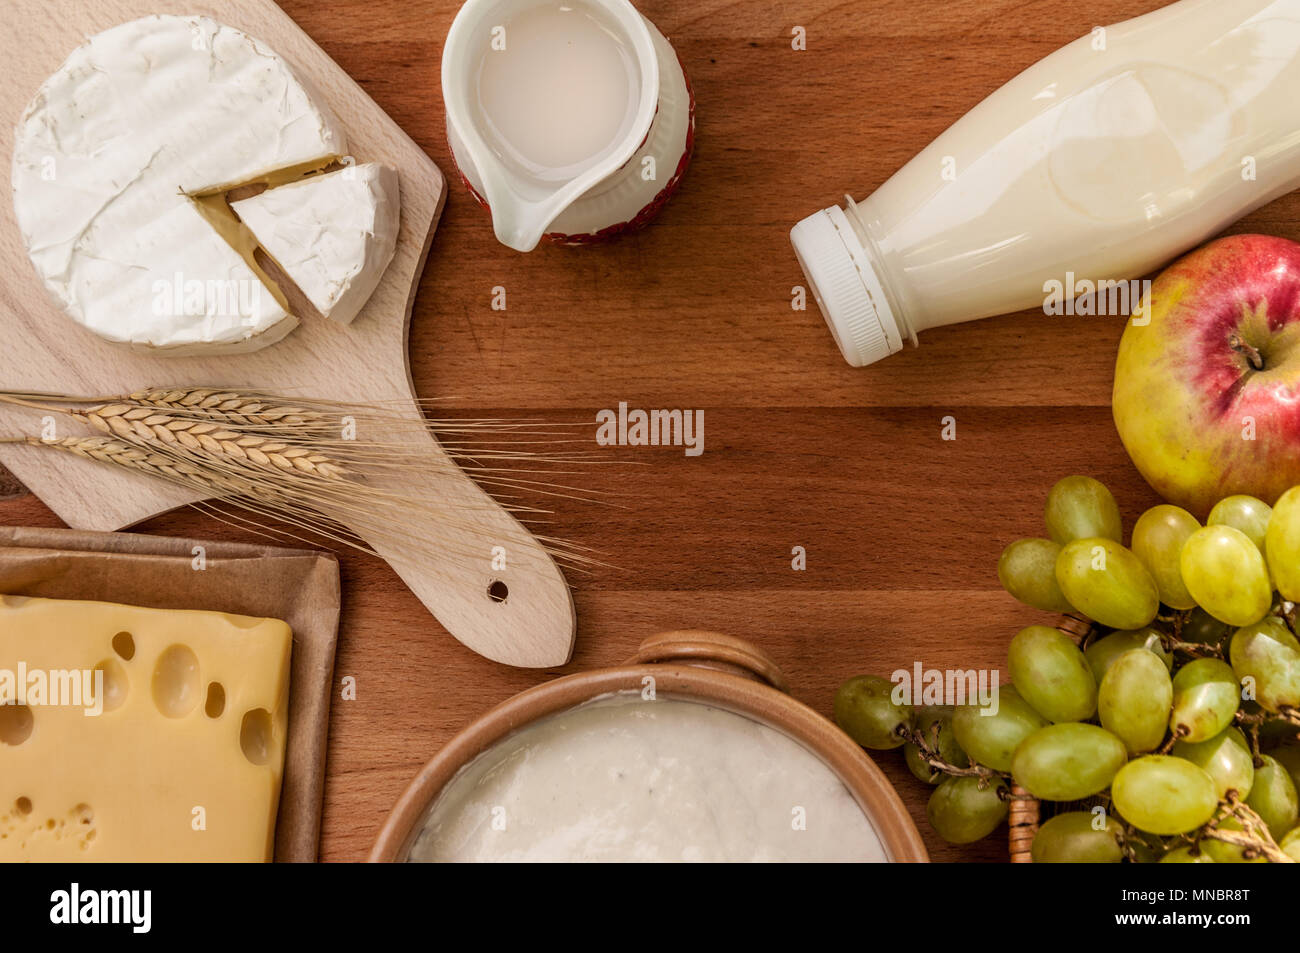 Rustic style tabletop with fruits and dairy products for shavuot celebration - Stock Image